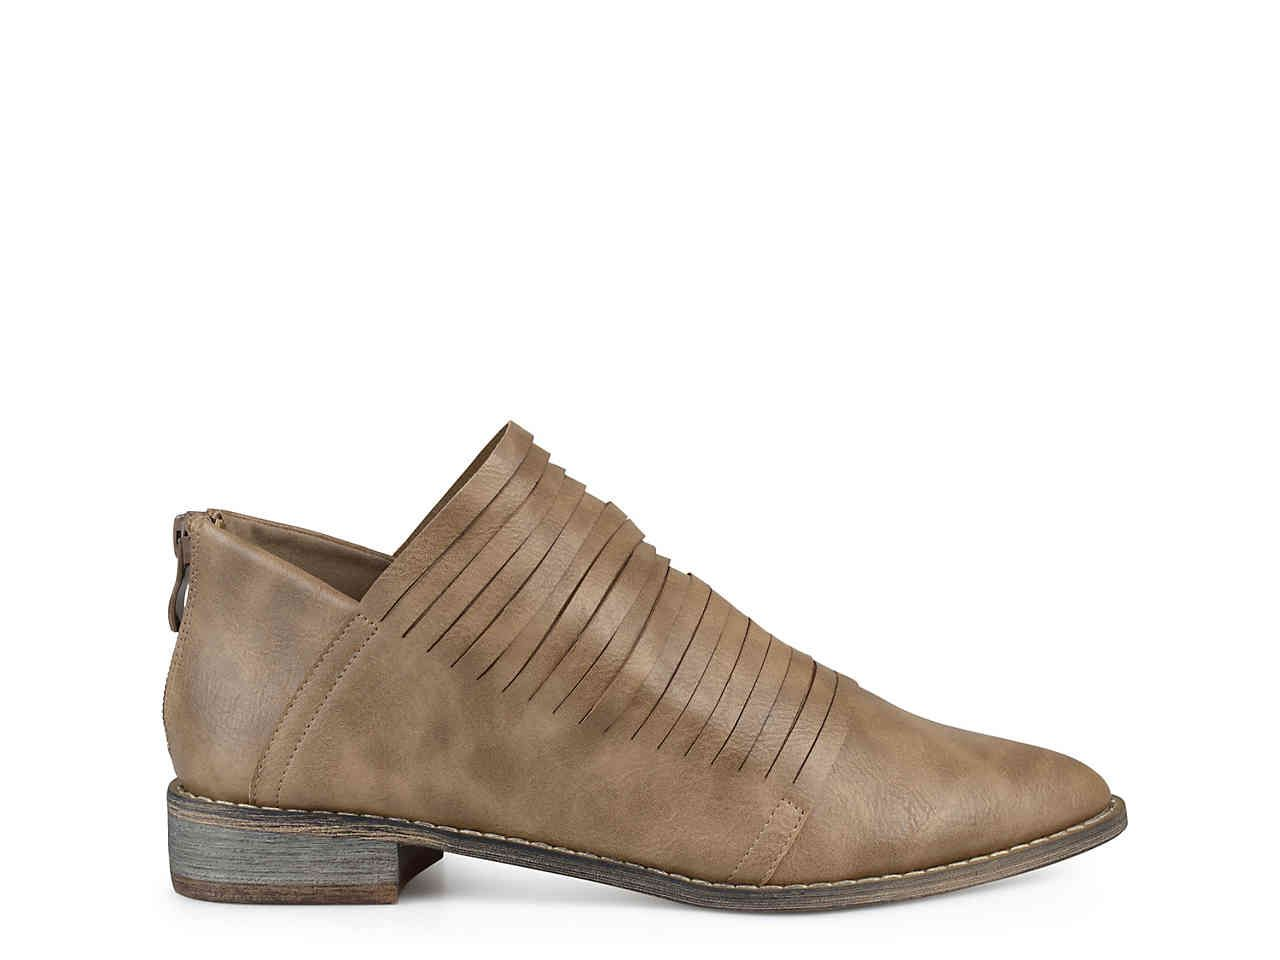 f67503c9ab Journee Collection Adela Bootie Women s Shoes